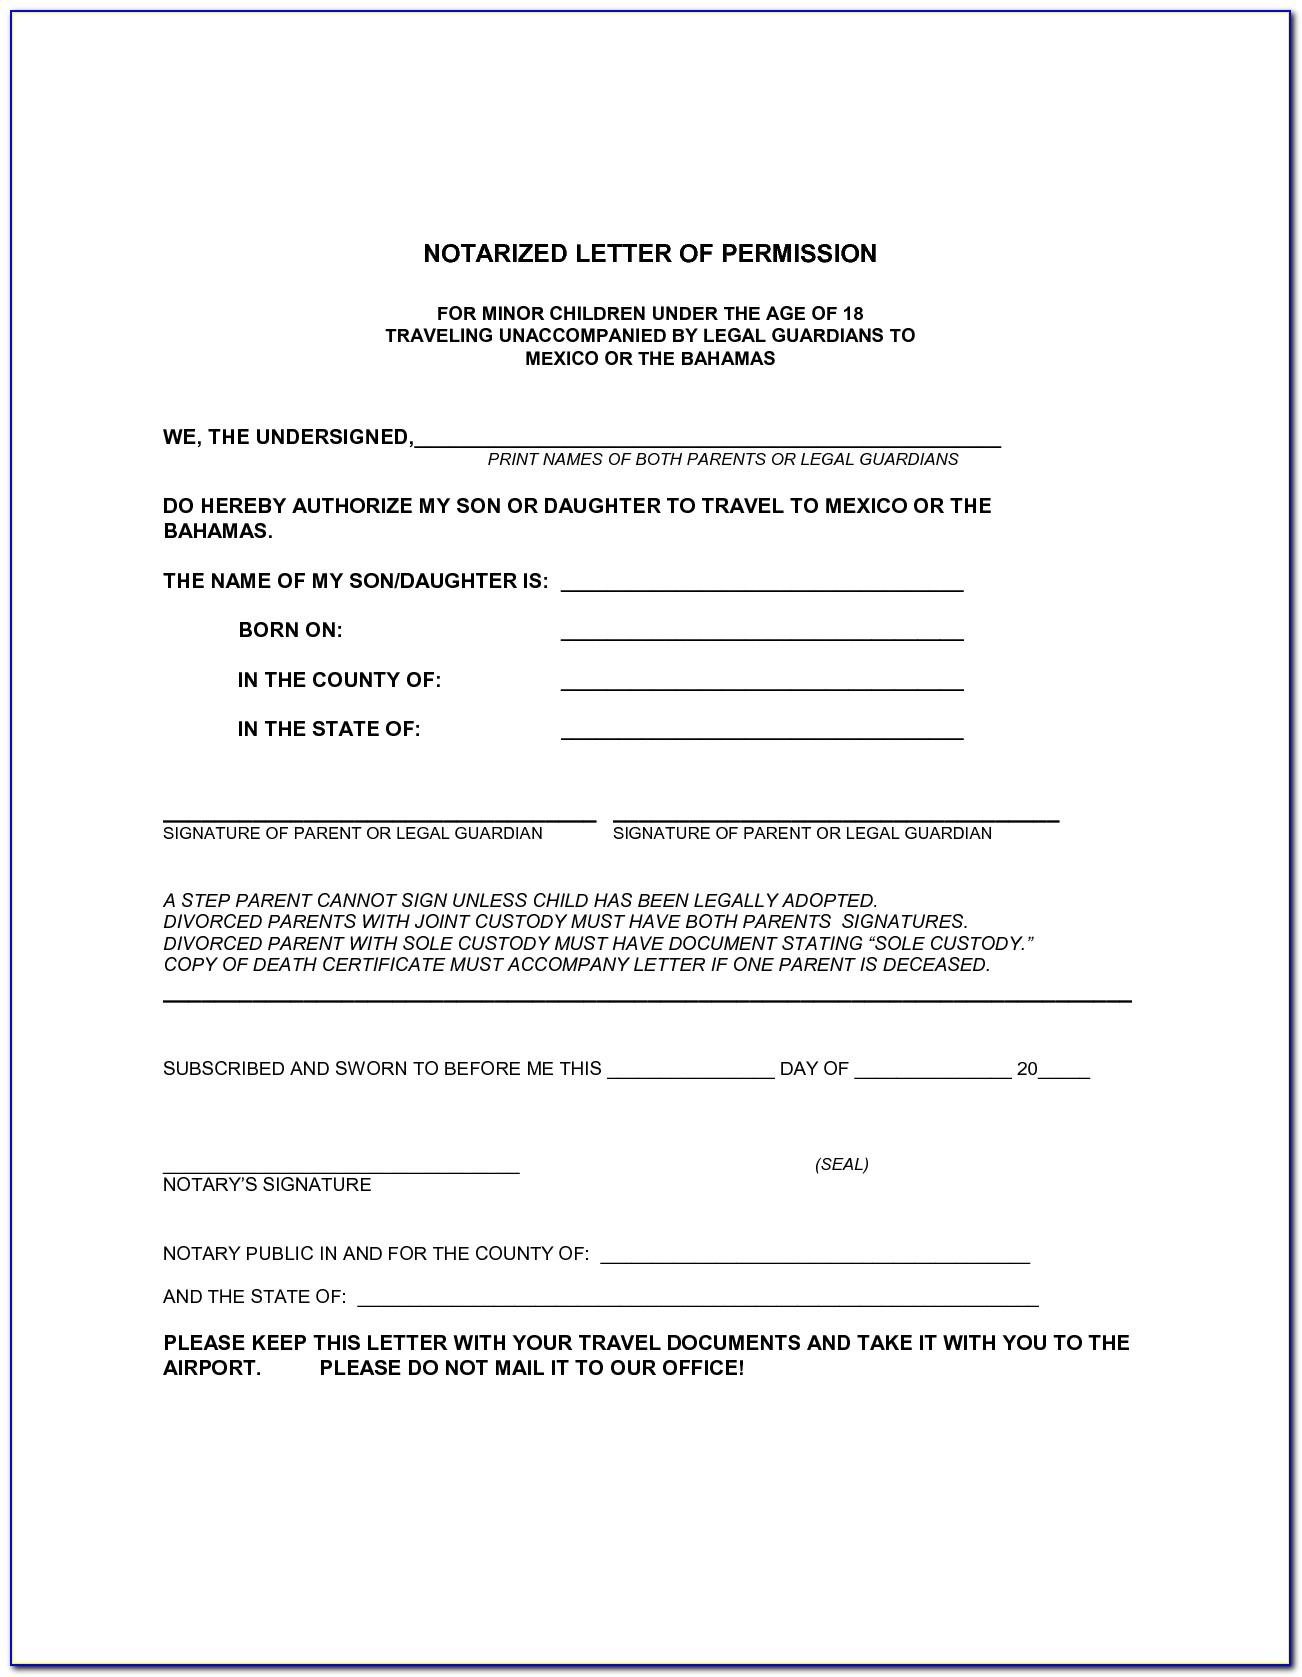 Sample Notarized Letter For Travel With Child Canada